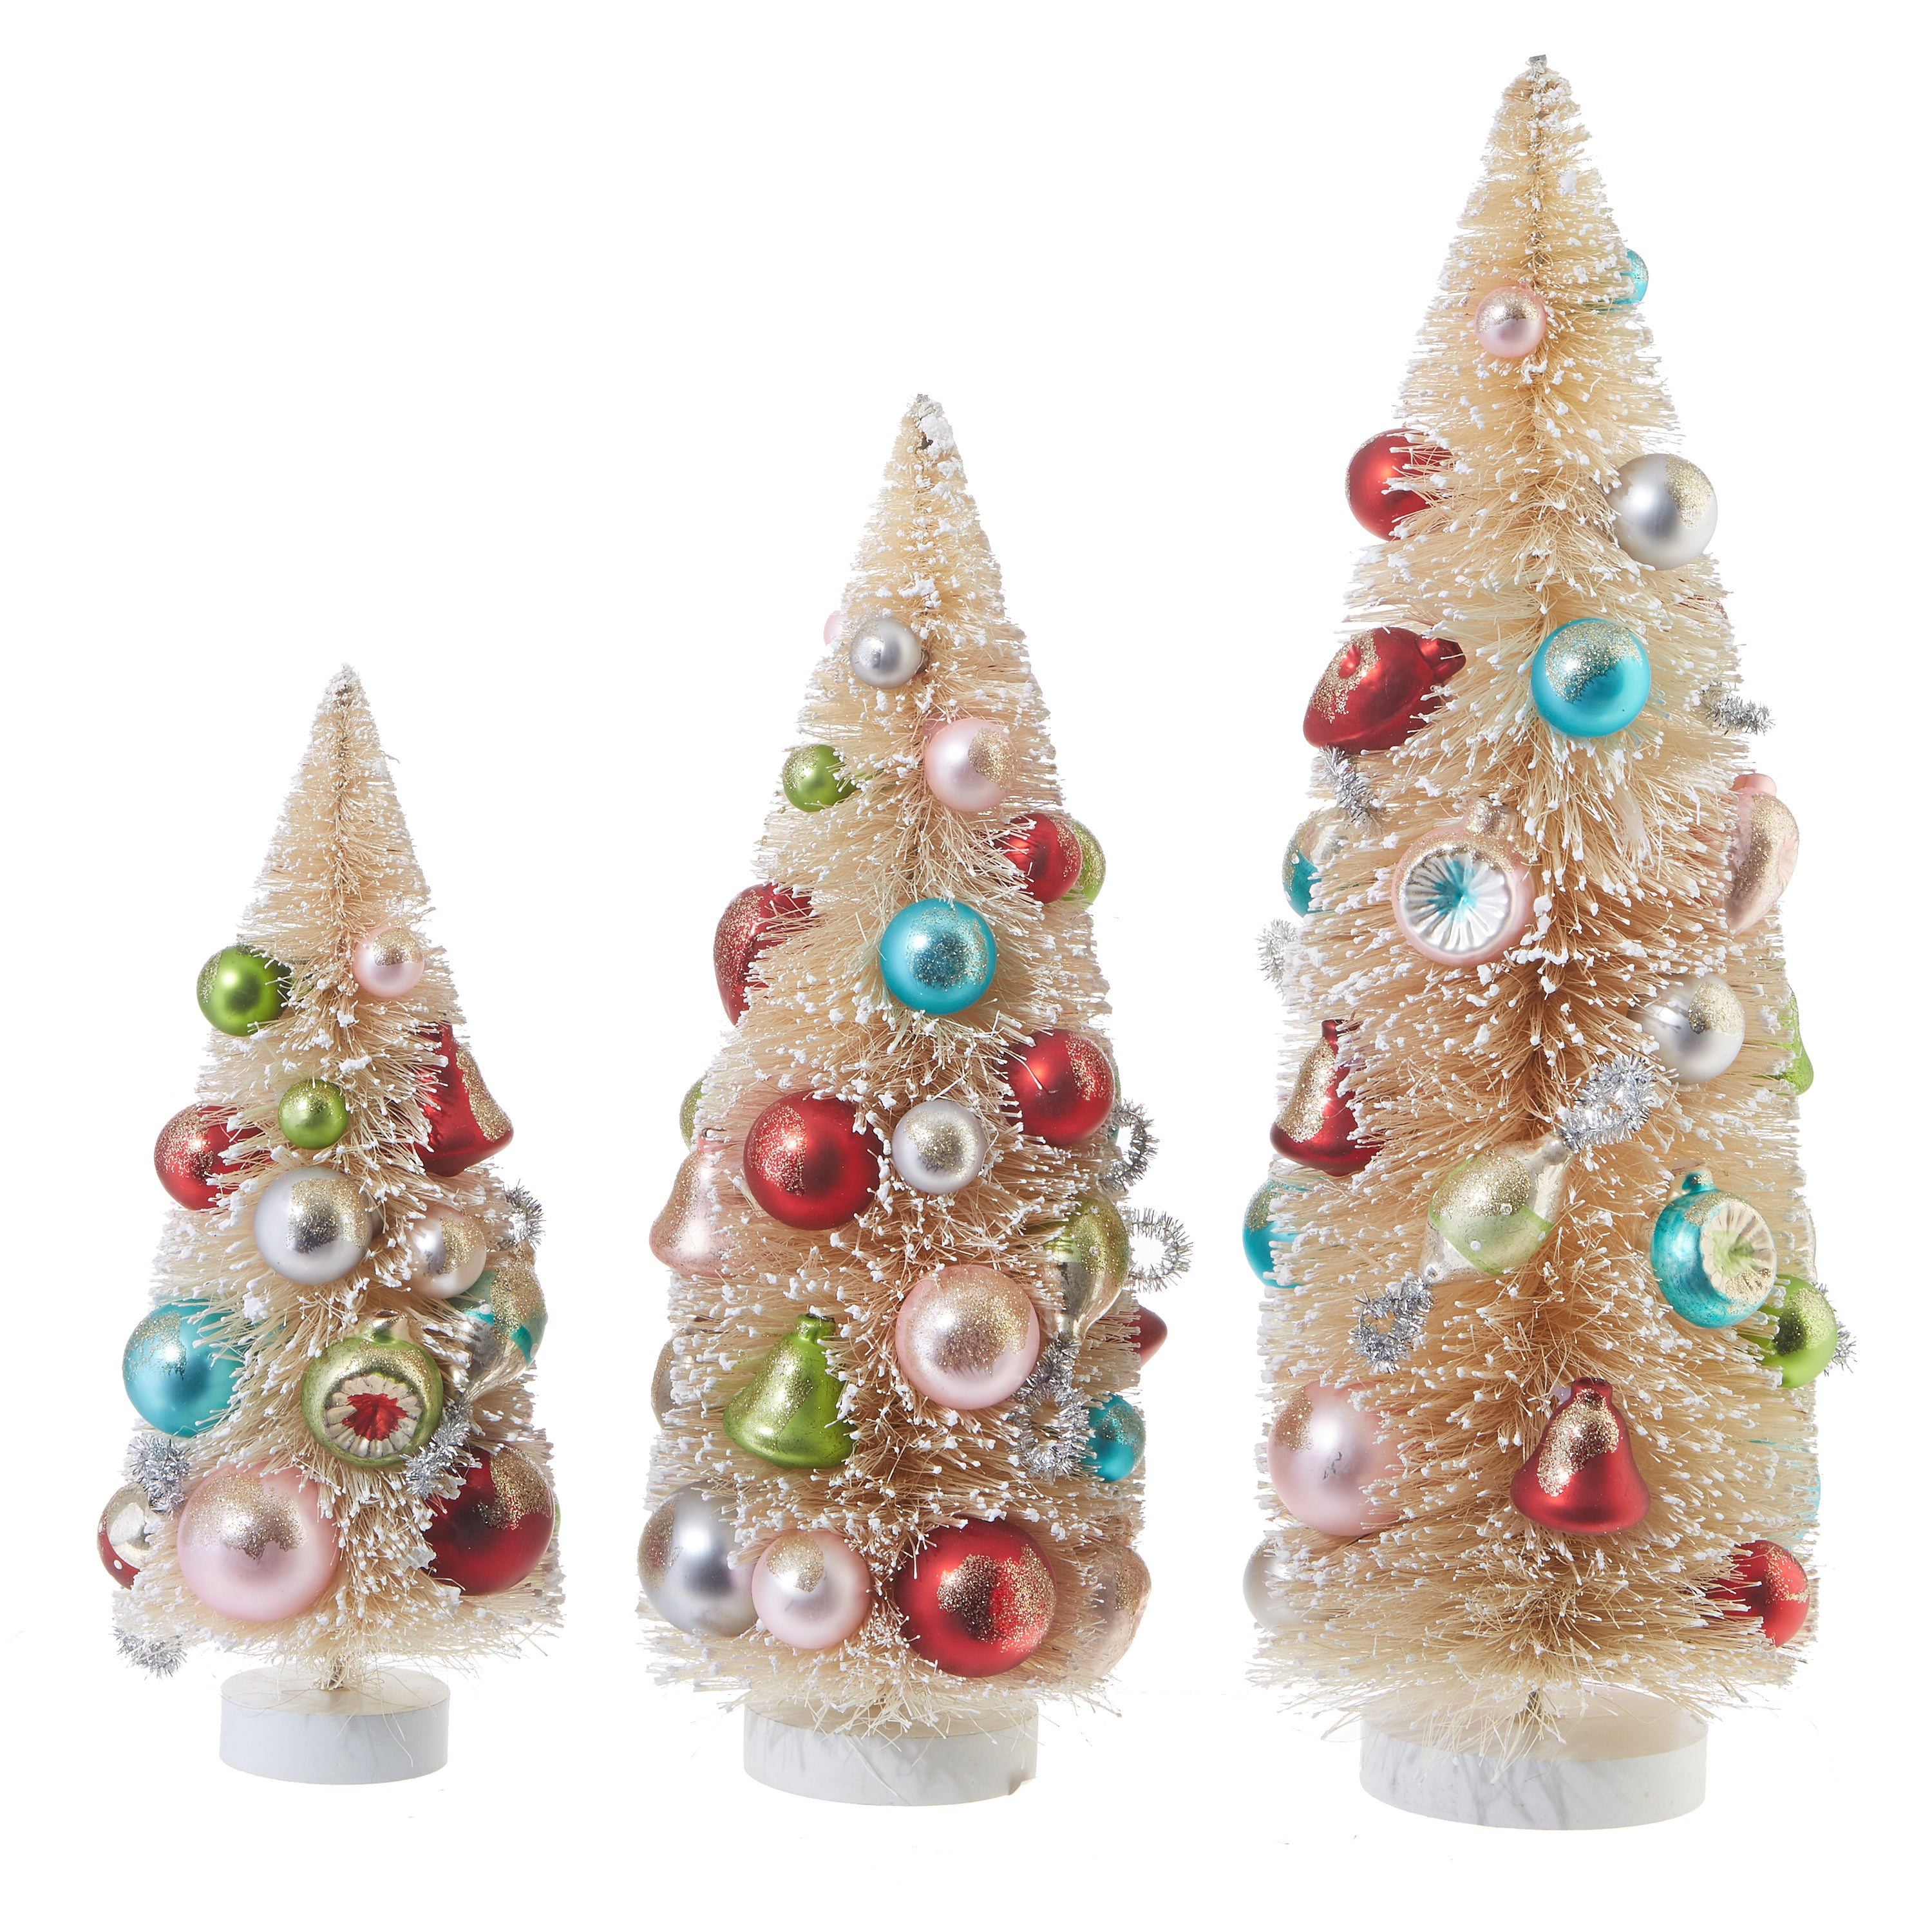 Decorated Bottle Brush Trees with Ornaments, Natural